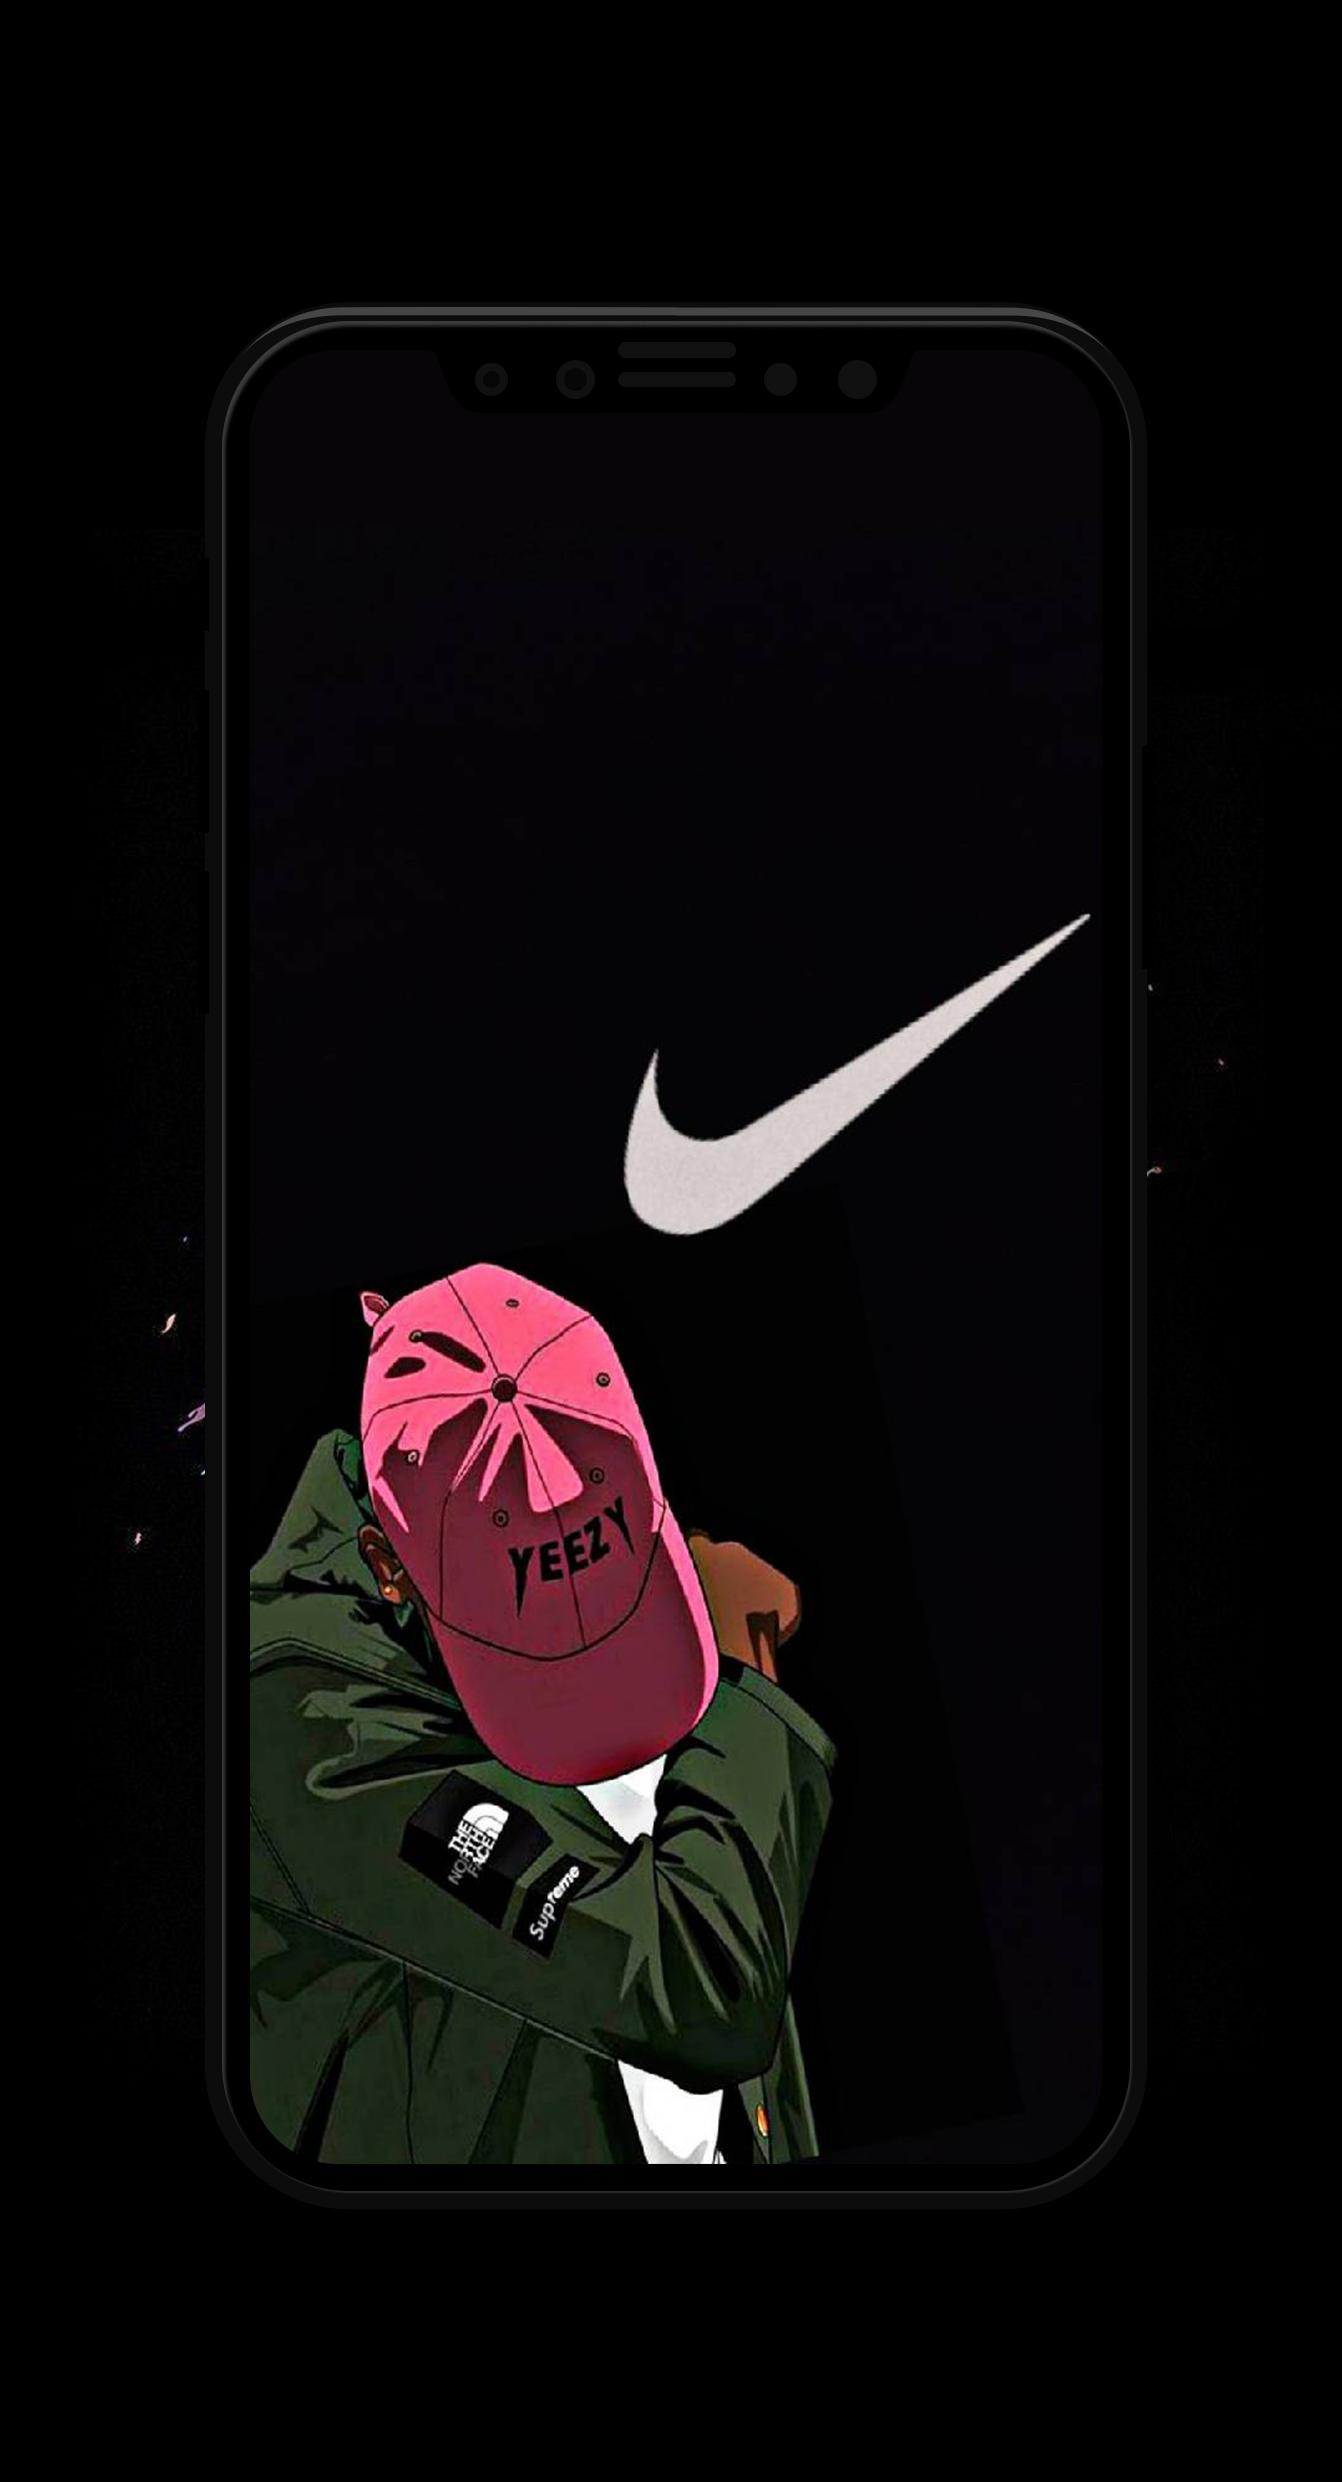 Nike Just Do It Wallpapers Hd 4k For Android